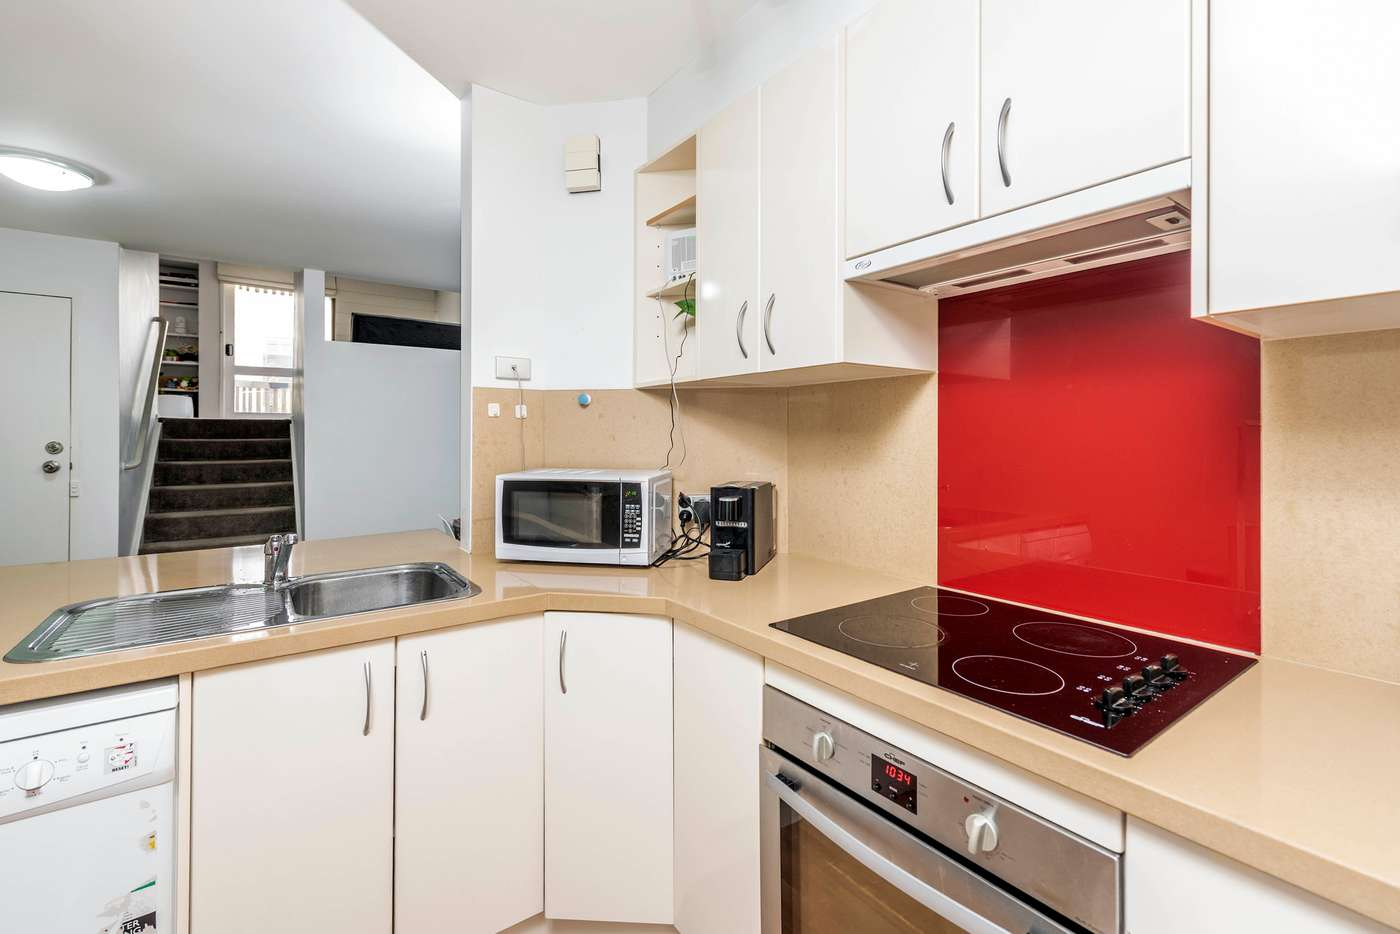 Sixth view of Homely townhouse listing, 29 Darling Street, Barton ACT 2600